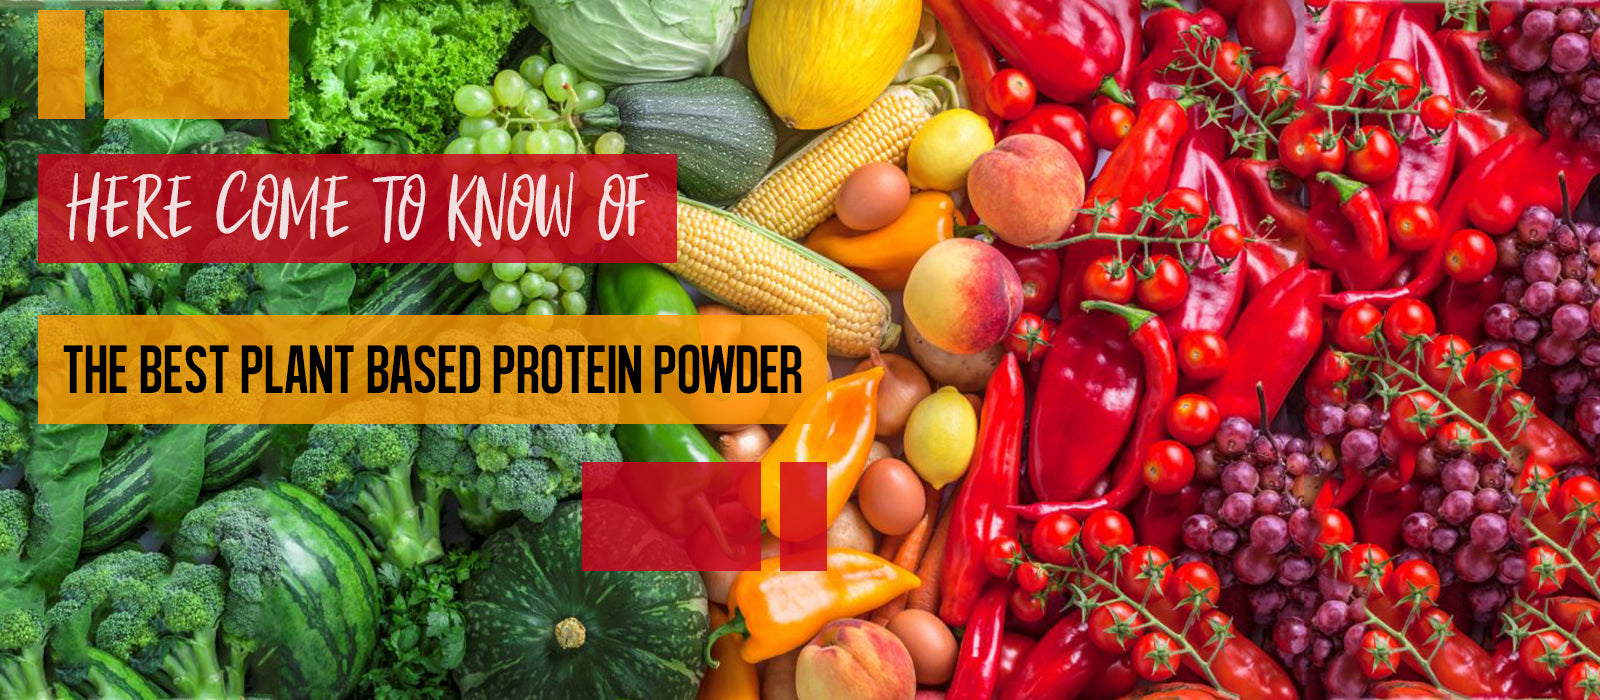 Here Come To Know Of The Best Plant Based Protein Powder